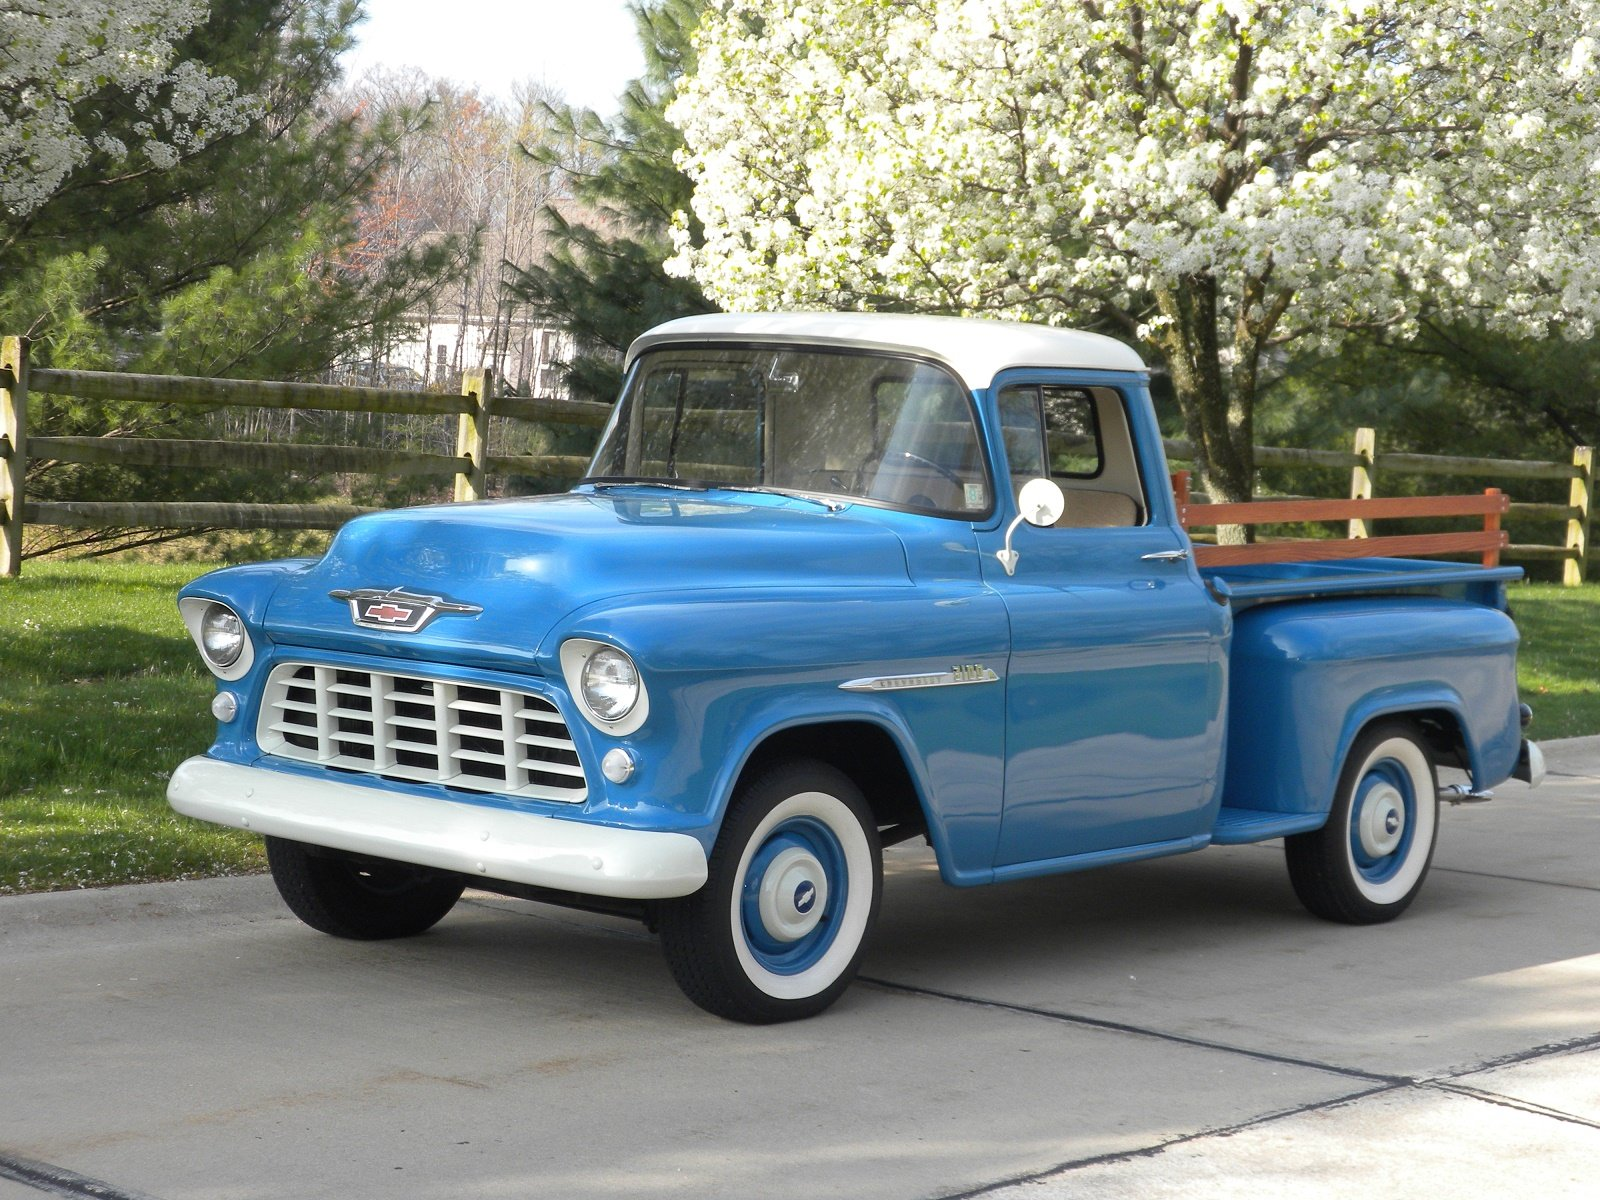 Ds 1957 Chevrolet Cameo Pickup 2 together with 1935 Chevrolet Master Car further Vehicle 516965 Chevrolet Task Force Apache 1958 together with 1955 Chevrolet Pickup Hot Rods Pictures also 1307 1957 Chevrolet Cameo. on 1955 chevy cameo pickup for sale